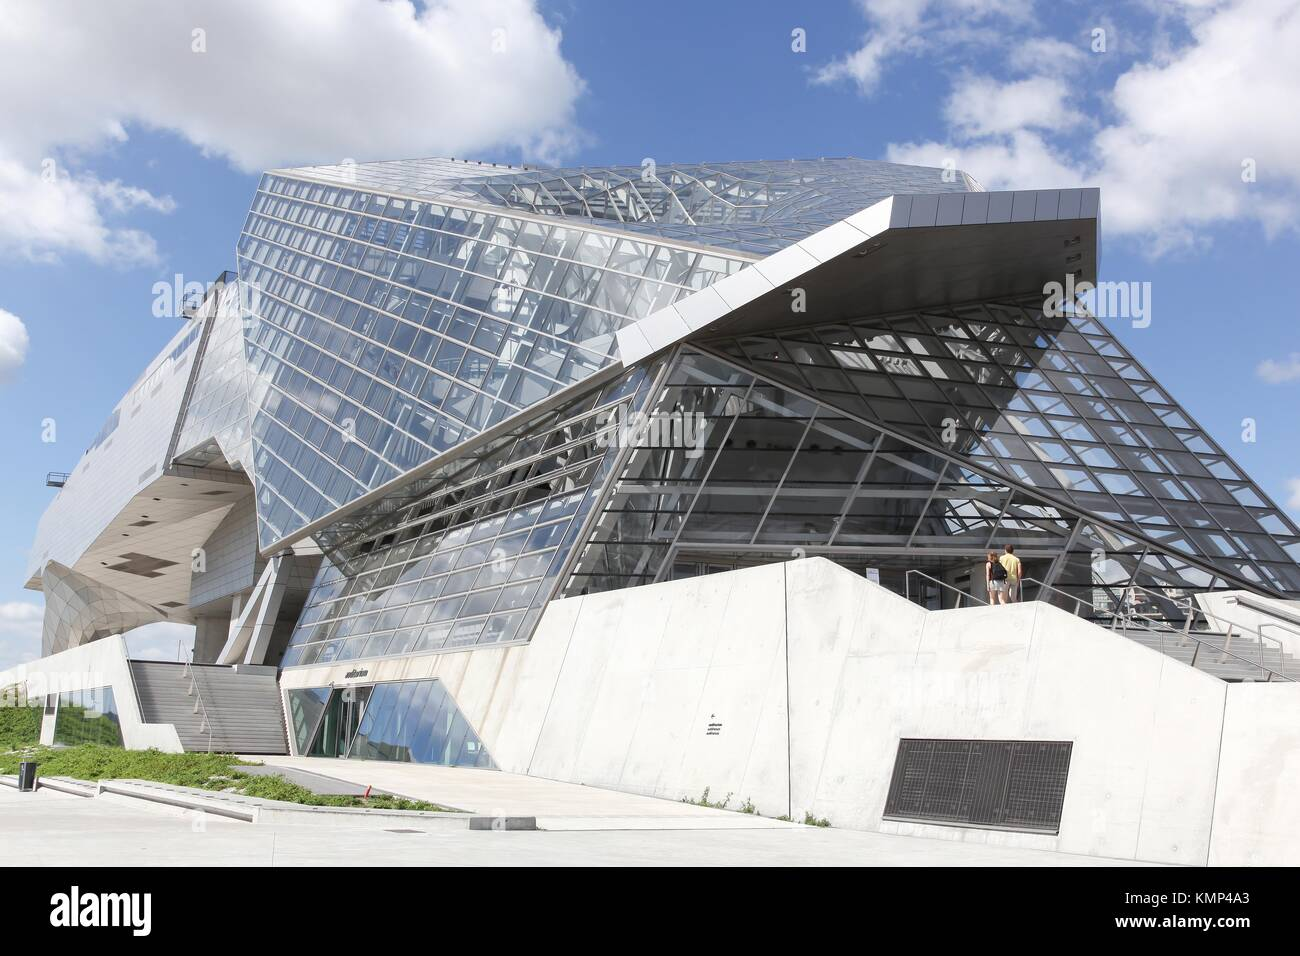 Lyon, France - July 3, 2017: The Musee des Confluences in Lyon, France. The Musee des Confluences is a science centre Stock Photo